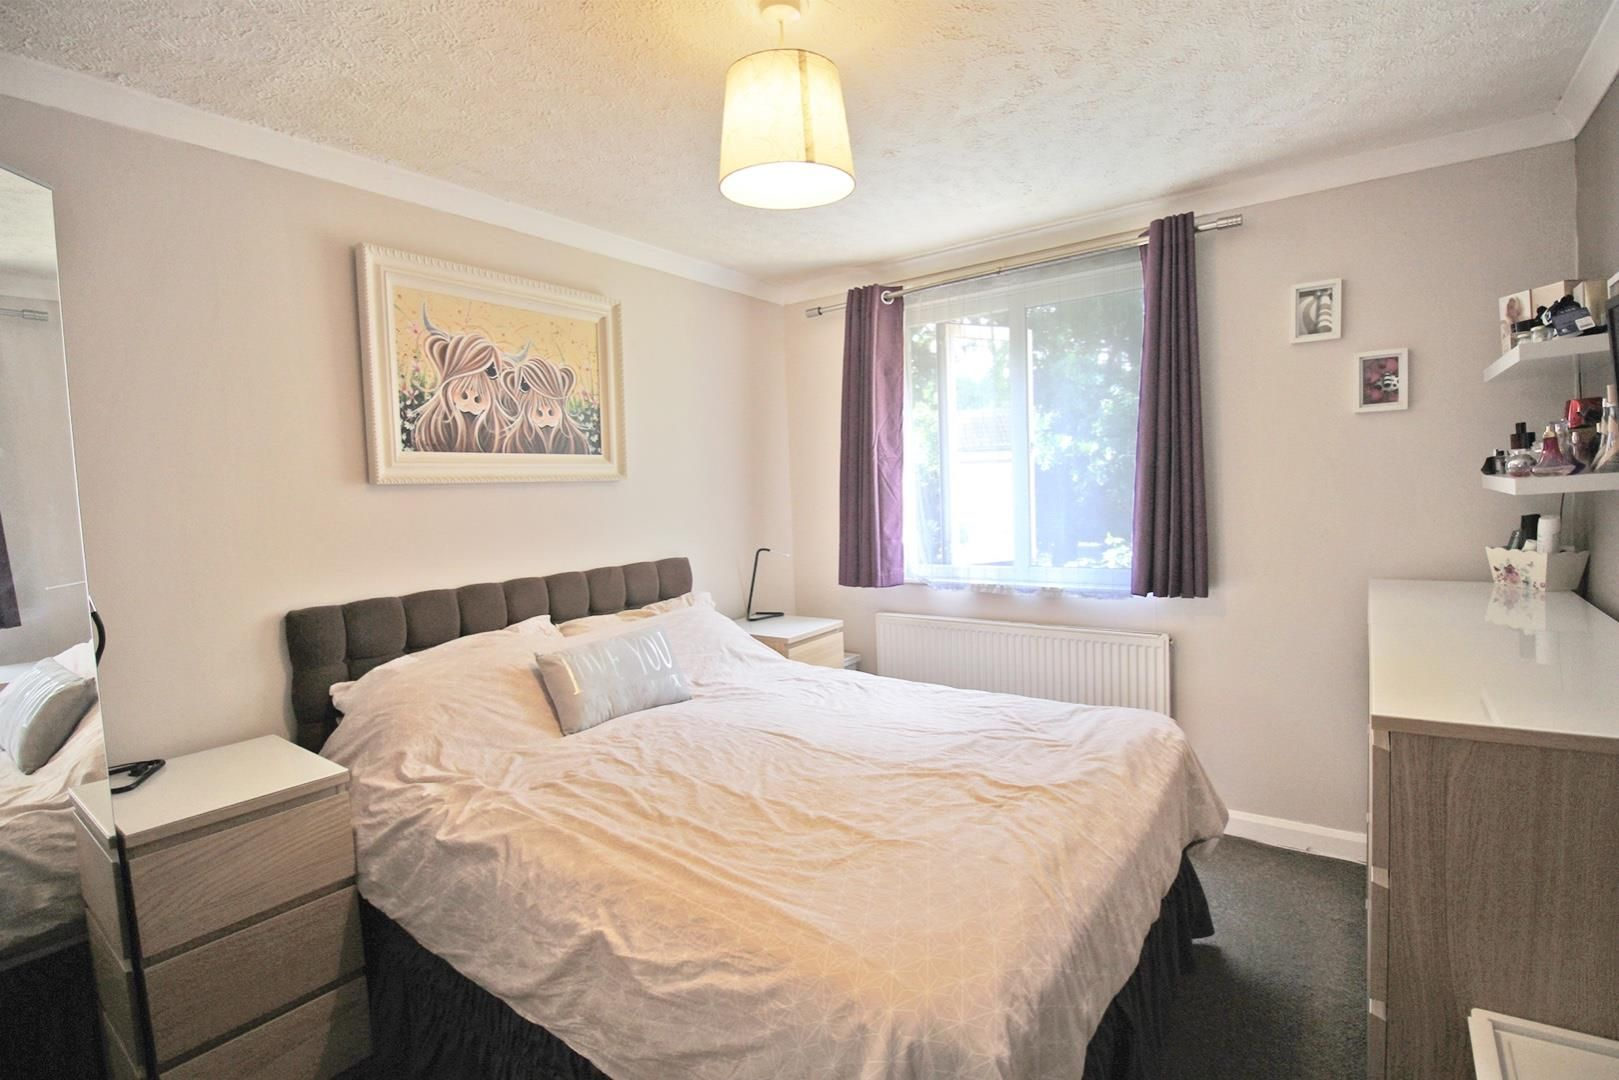 3 bed terraced for sale in Hanworth  - Property Image 8